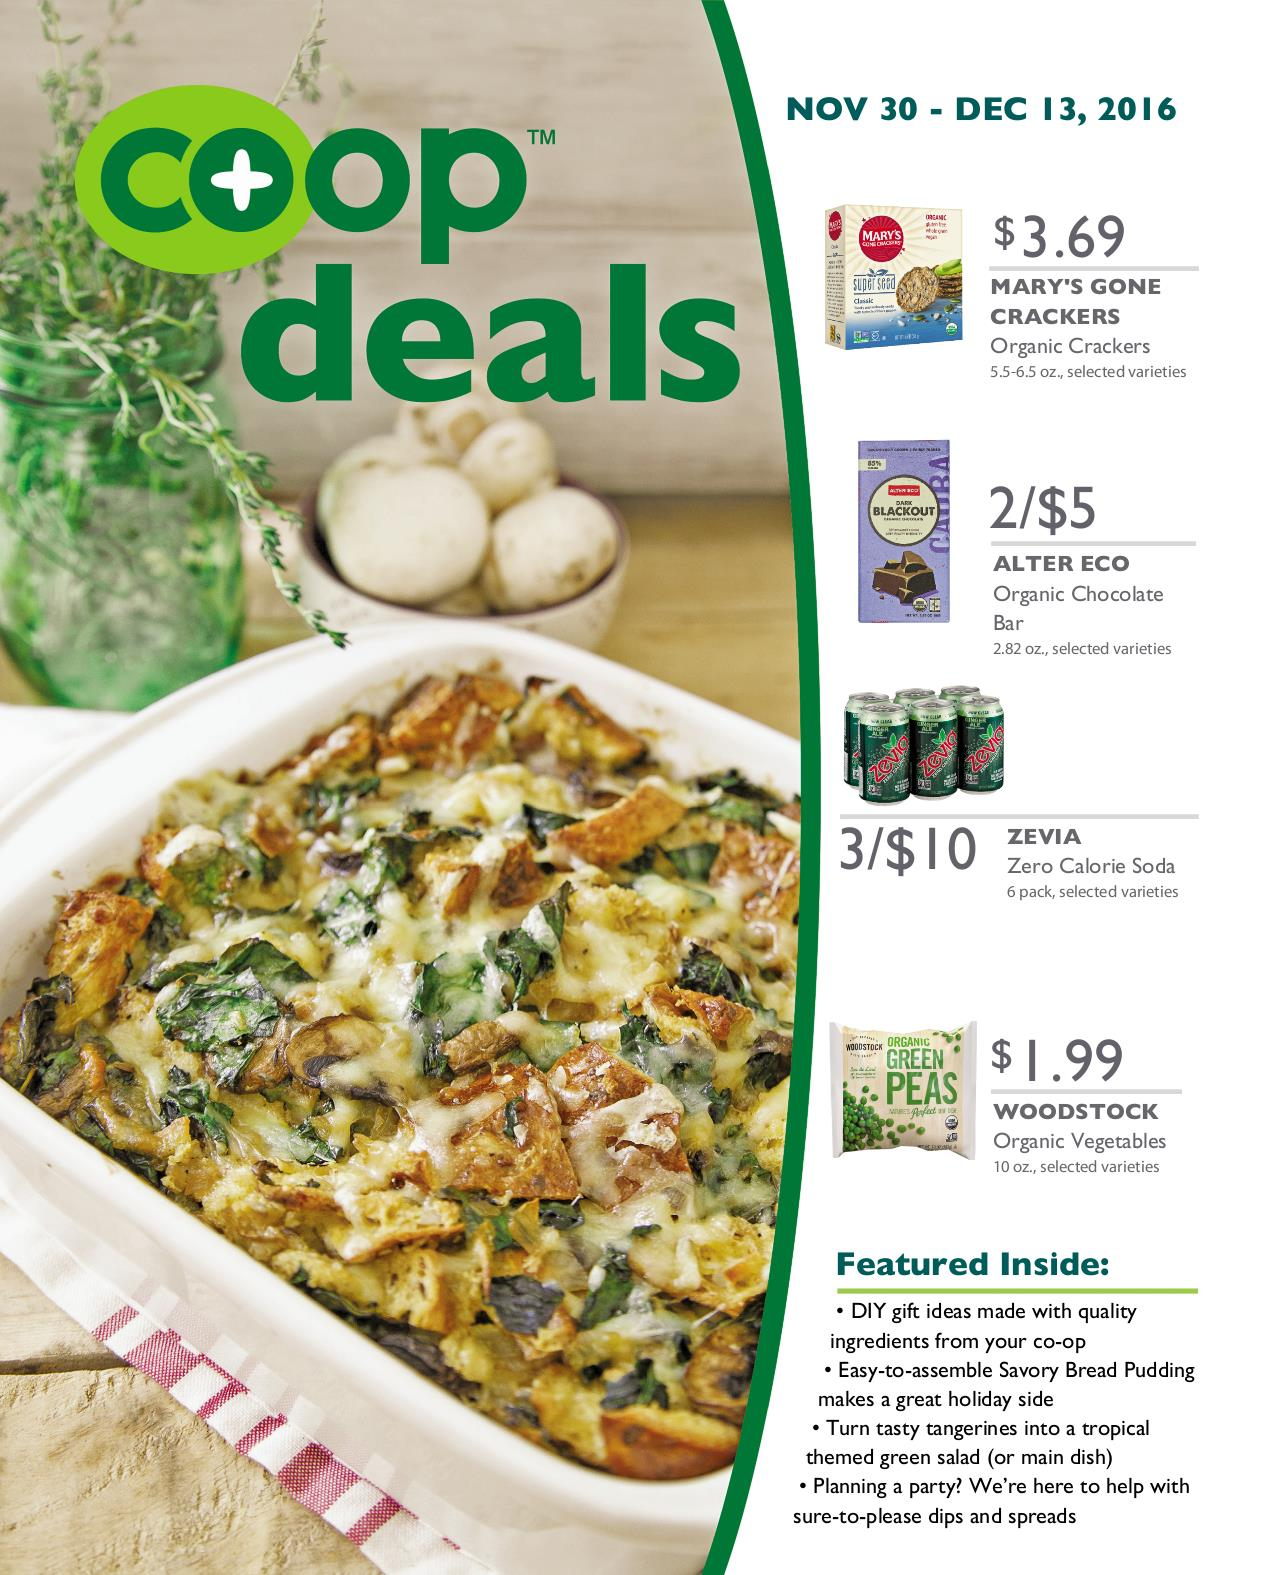 Co+op Deals December 2016 - Flyer A